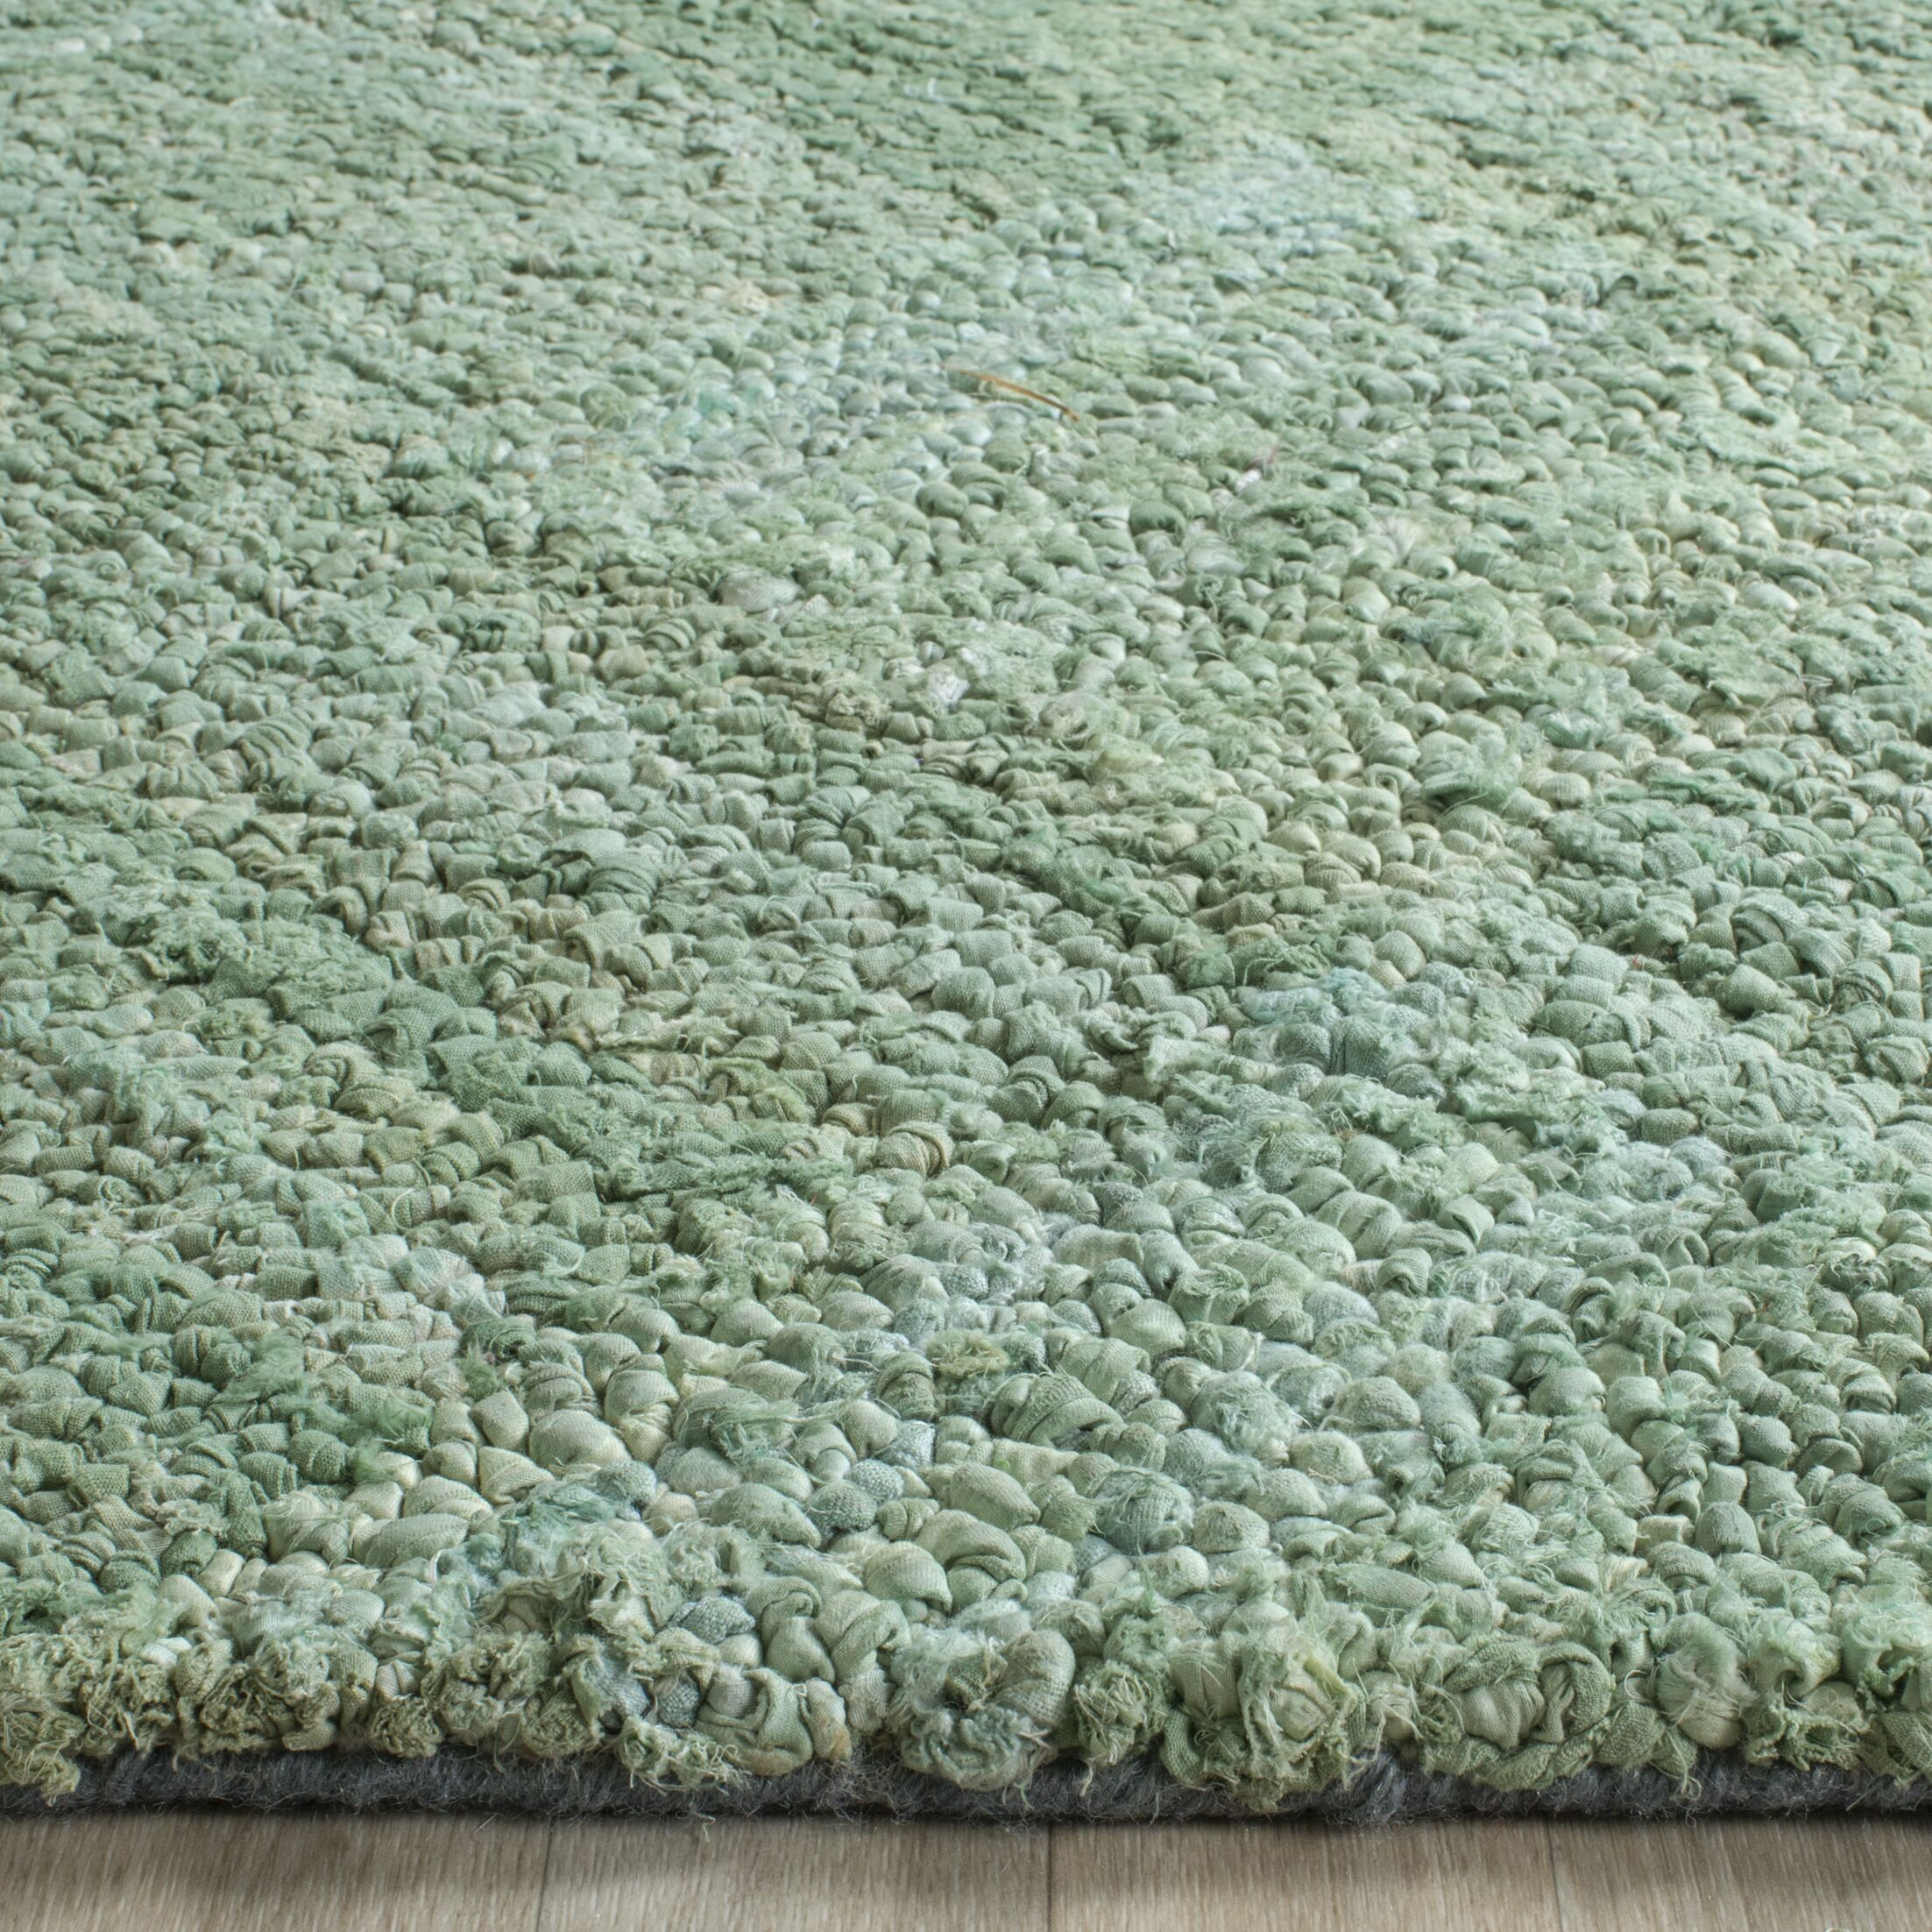 Millia Hand-Tufted Green Area Rug Rug Size: Rectangle 10' x 14'